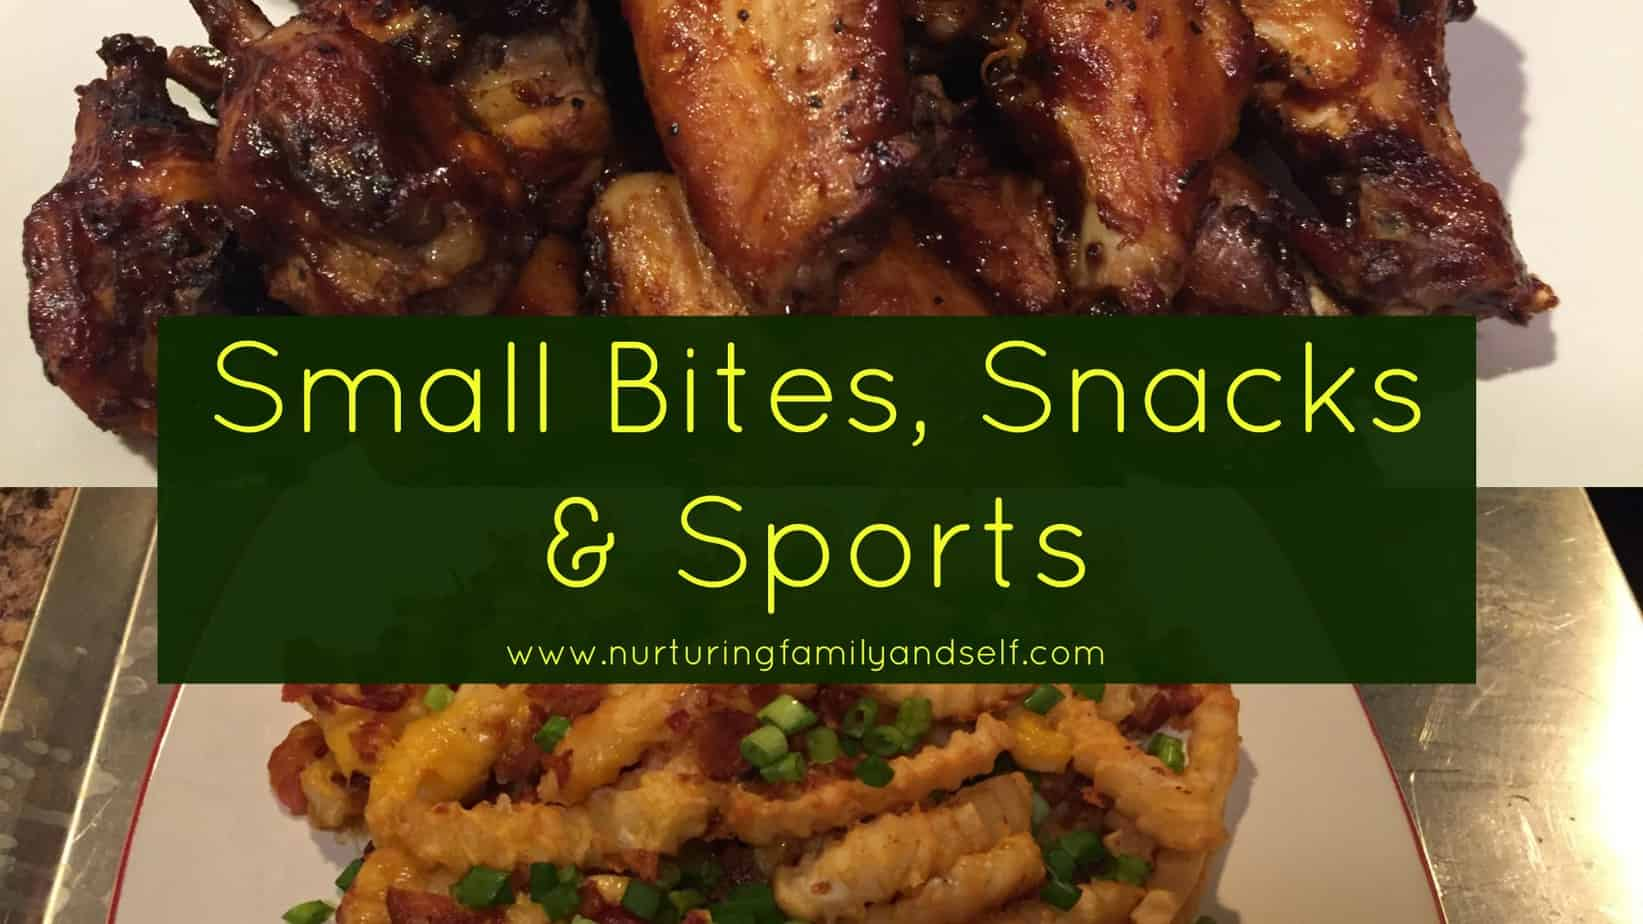 Small Bites-Snacks-Sports Featured Image